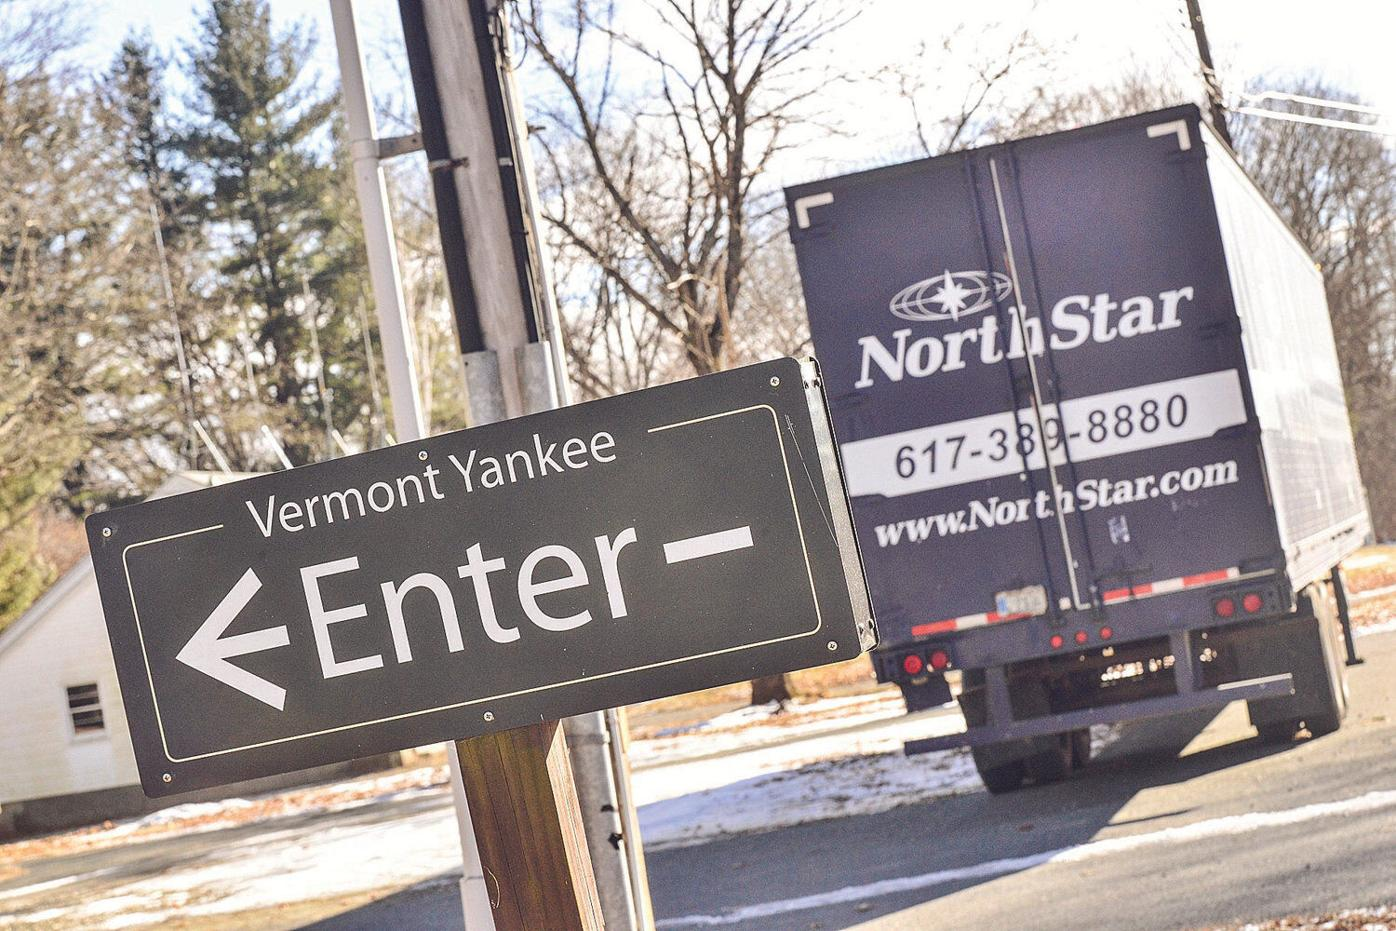 Yankee sale to NorthStar completed